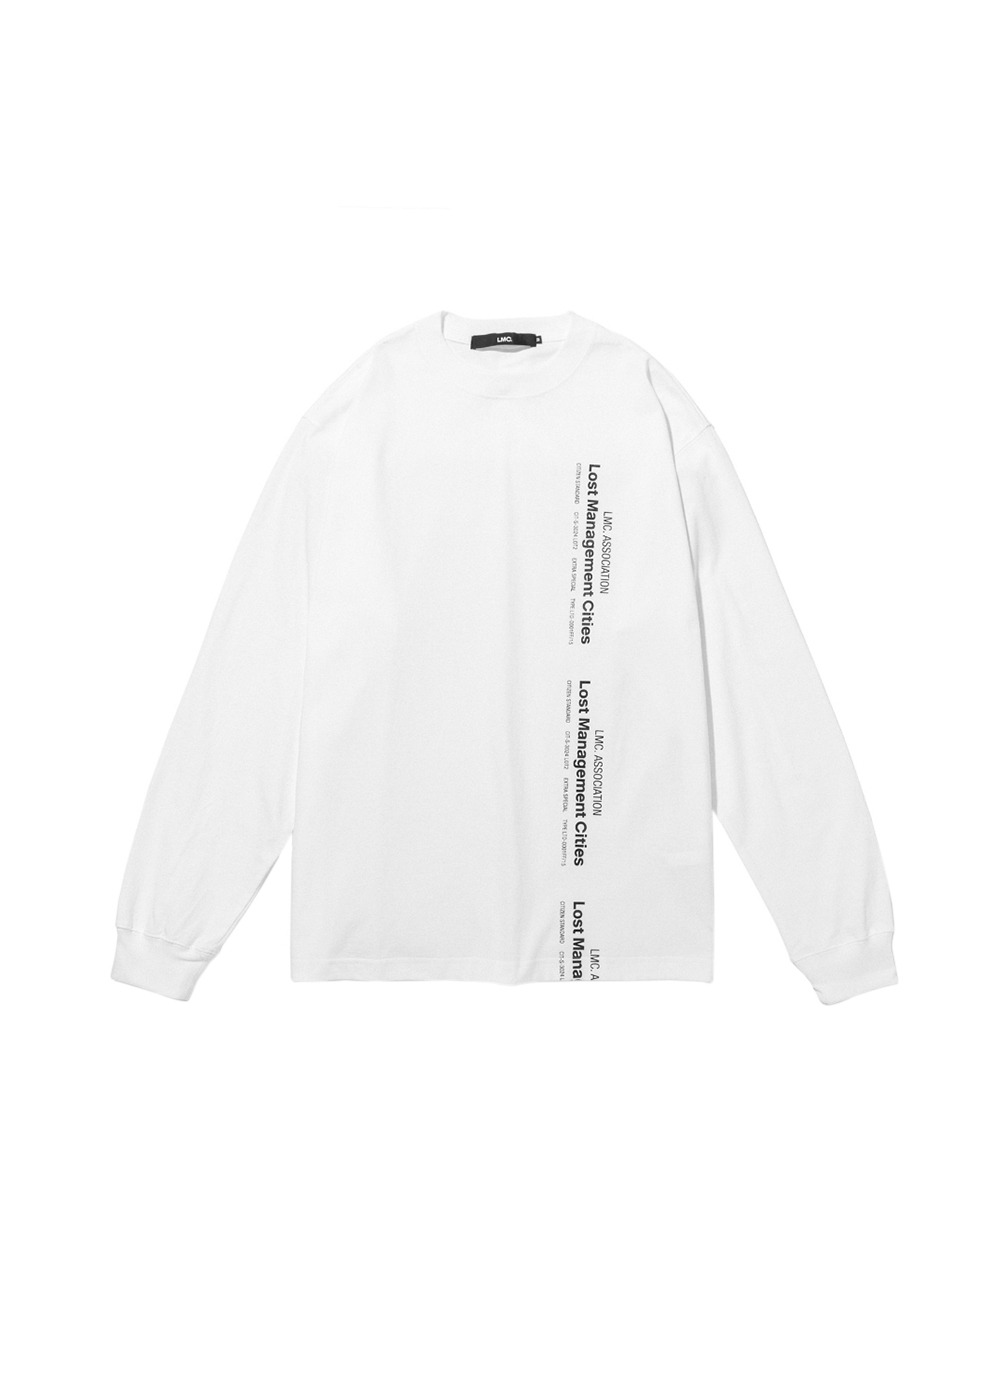 LMC VERTICAL MIL LONG SLV TEE white